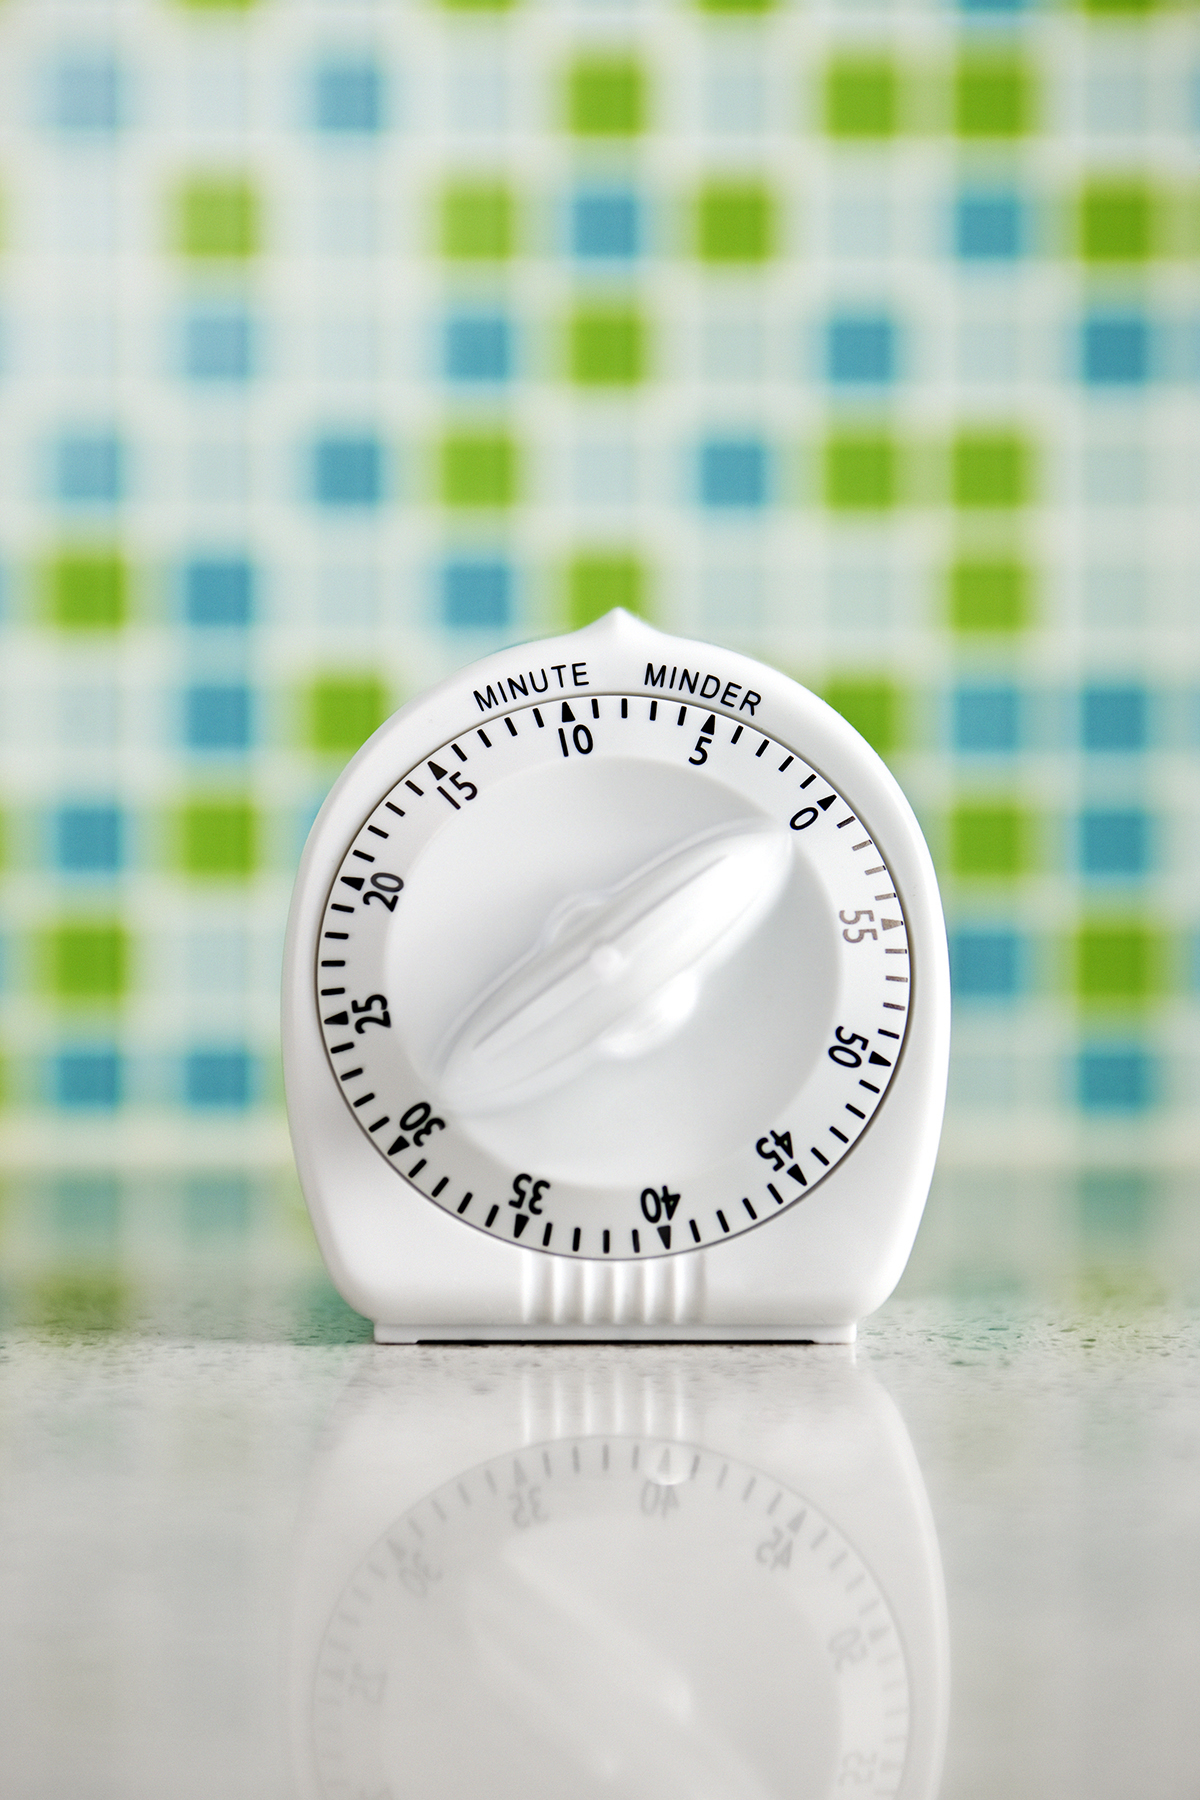 Kitchen timer with blue and green tiles